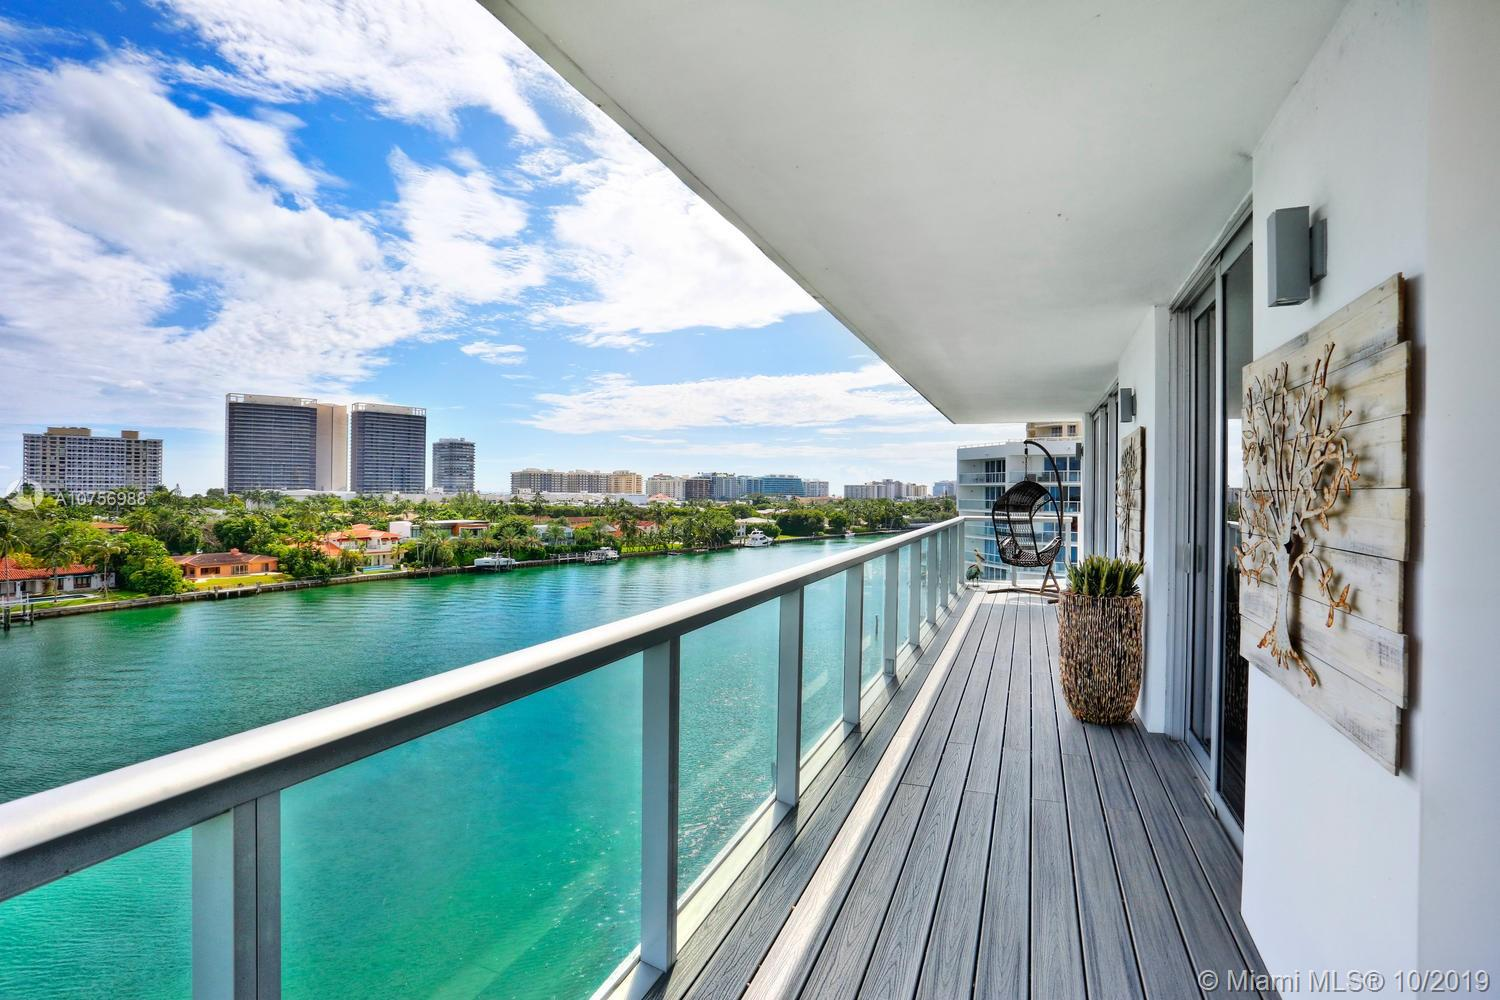 Enjoy island-style living in this luxury boutique building, built in 2016 & just a short walk to world-class shopping & dining and the beaches of Bal Harbour. Light-filled living spaces with Porcelain tile flooring , wrap-around balcony & walls of glass that overlook spectacular water views. Currently configured as a 1BR/2BA (owner will reconvert to a 2/2). Sleek, European-style kitchen features quartz countertops & top-of-the-line appliances. Unique building with only 17 residences (3 per floor) and it's own private marina with direct ocean access. Resort-style rooftop deck with 360-degree water views, 45' heated pool, sundeck  & outdoor fitness area. (Unit has an assigned boat dock with an additional $275 association fee for maintenance) Murphy Bed excluded (can be negotiated into price)